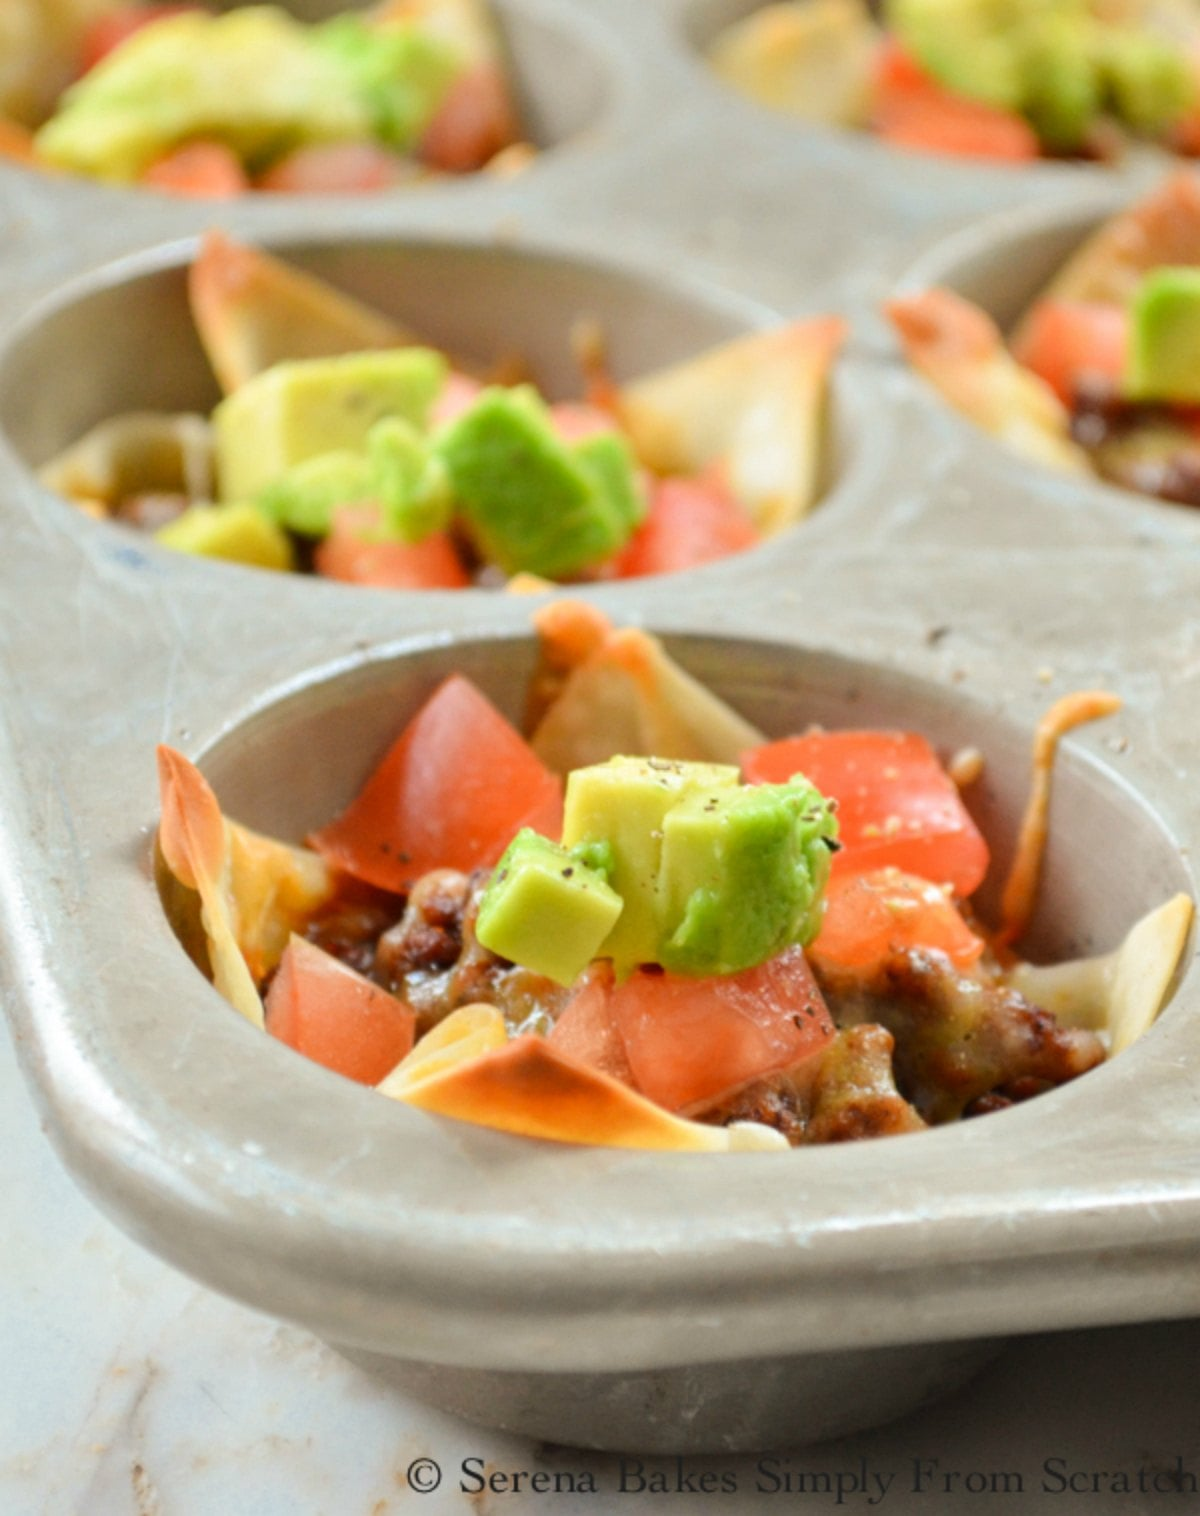 Wonton Taco Cups filled with homemade ground beef enchilada filling are a favorite easy finger food appetizer or dinner recipe from Serena Bakes Simply From Scratch.